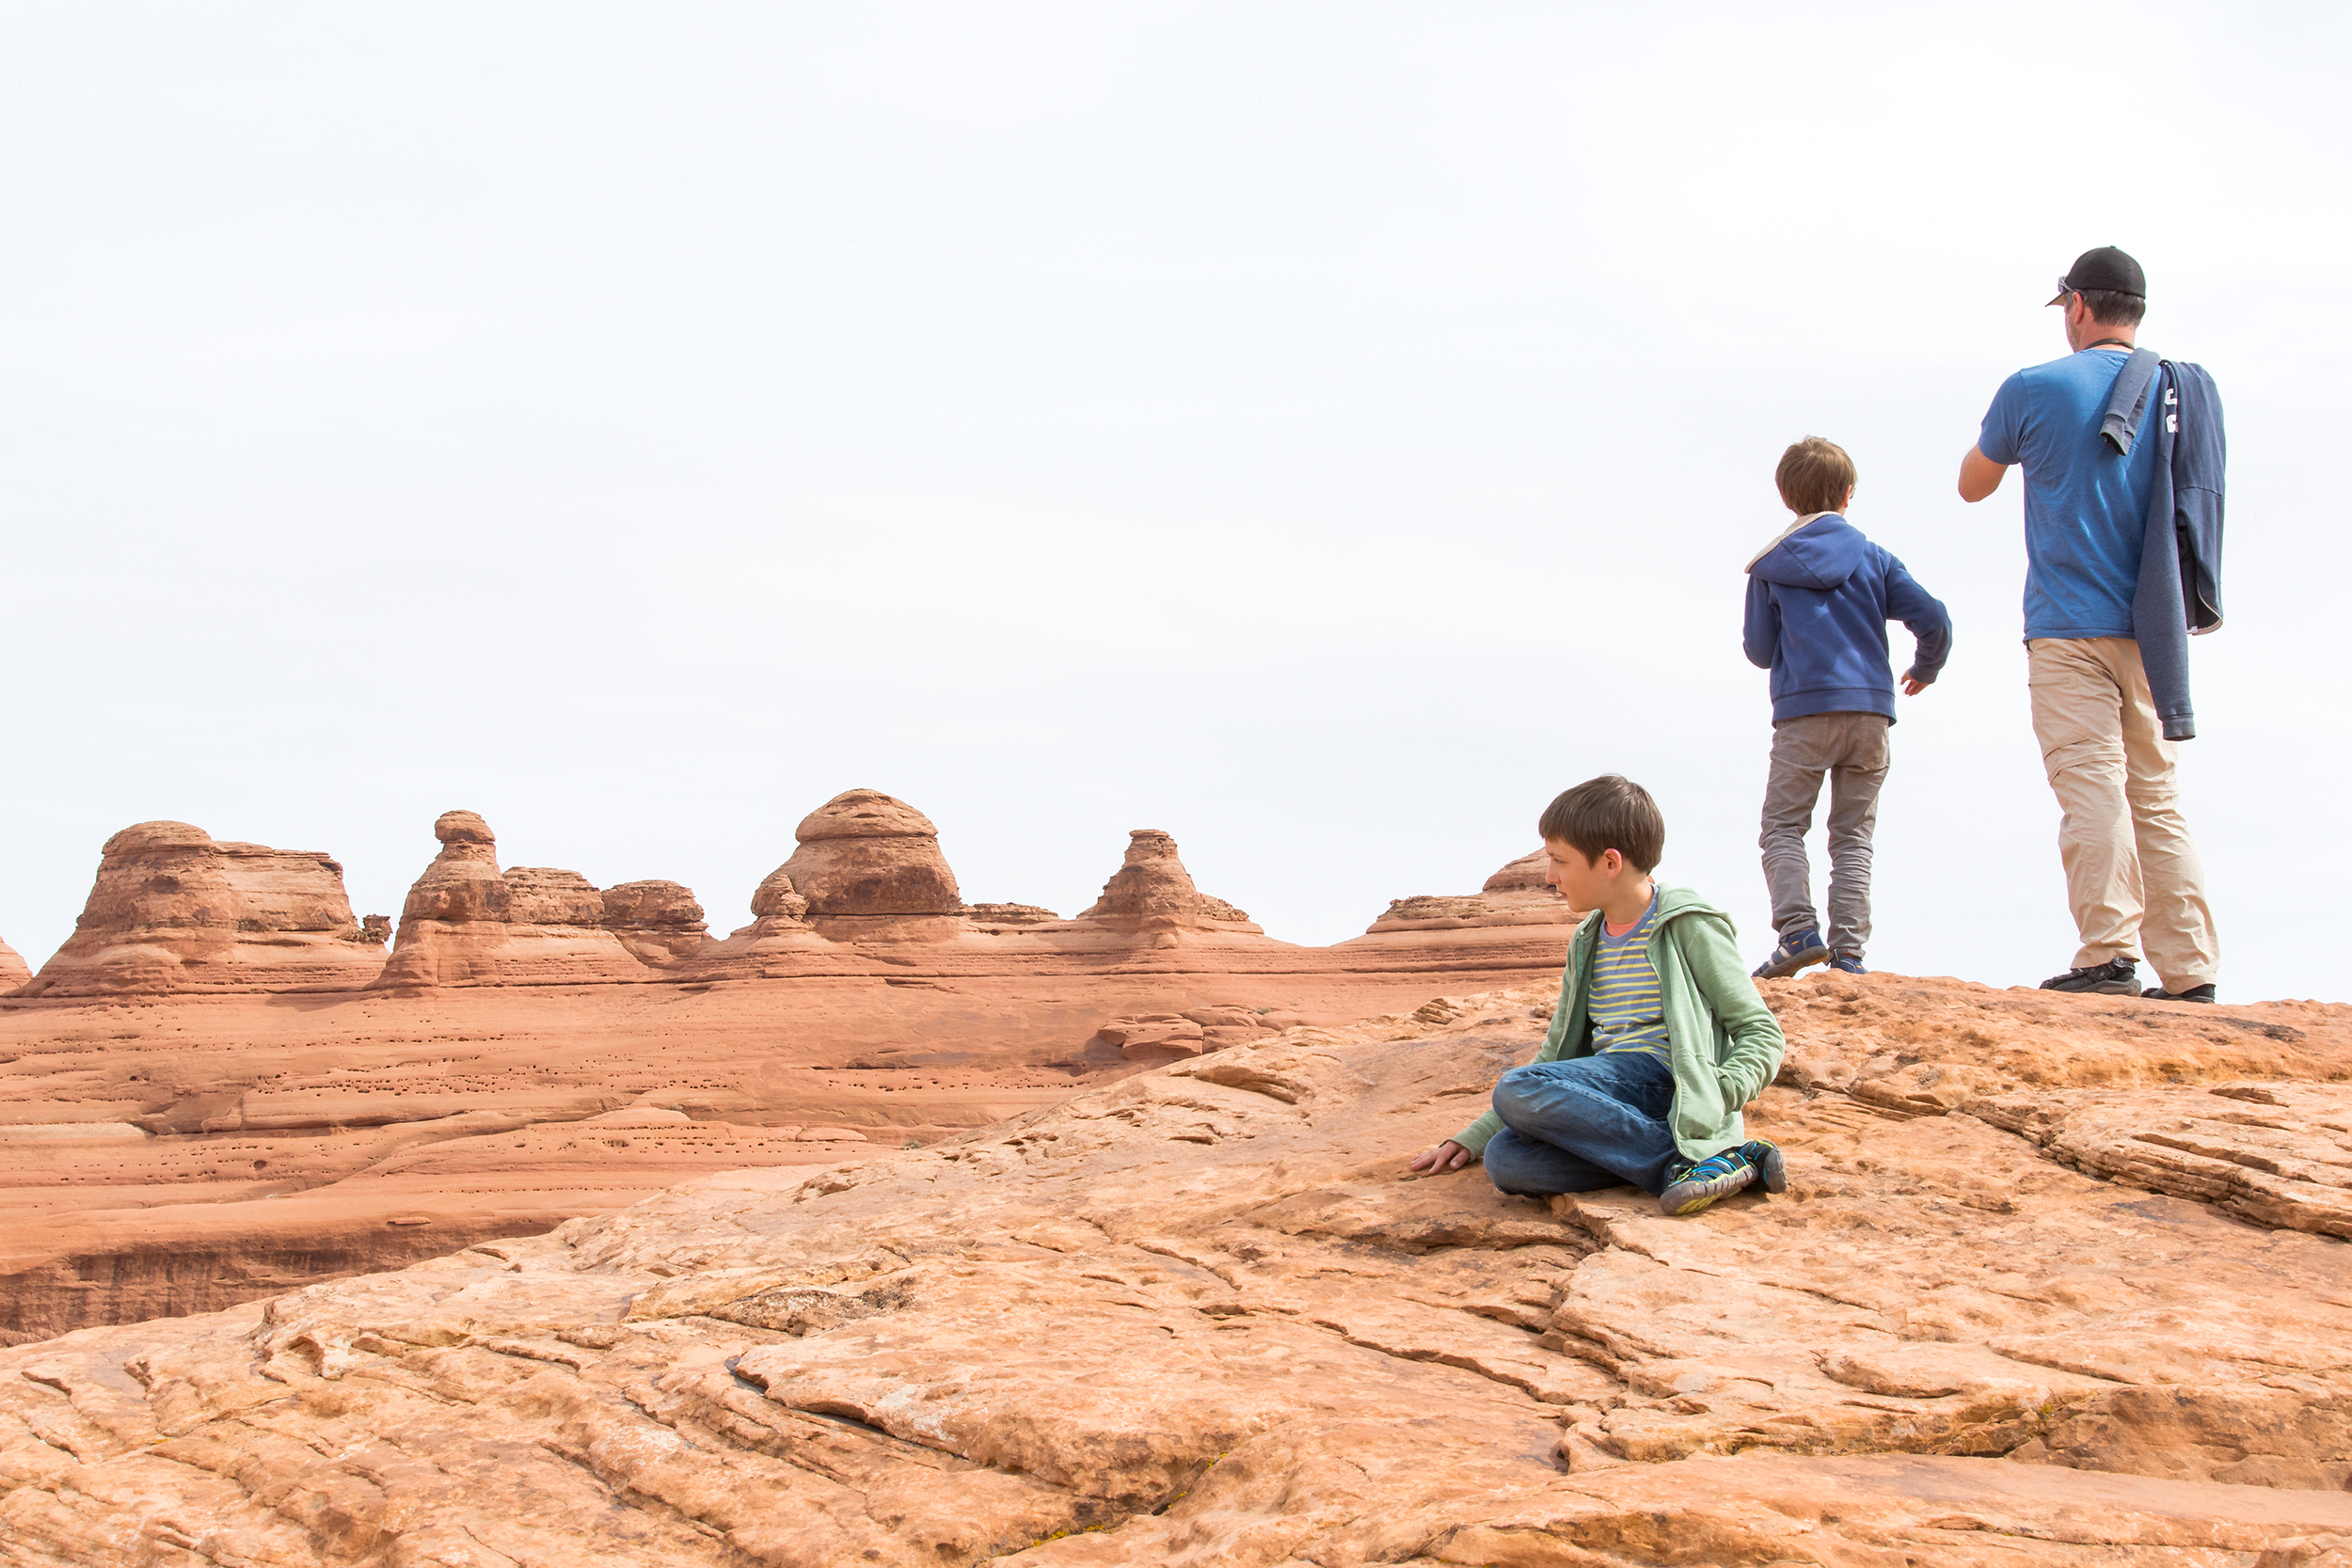 NATLPARKING_travel_rv_adventure_archesnationalpark_2647_WB